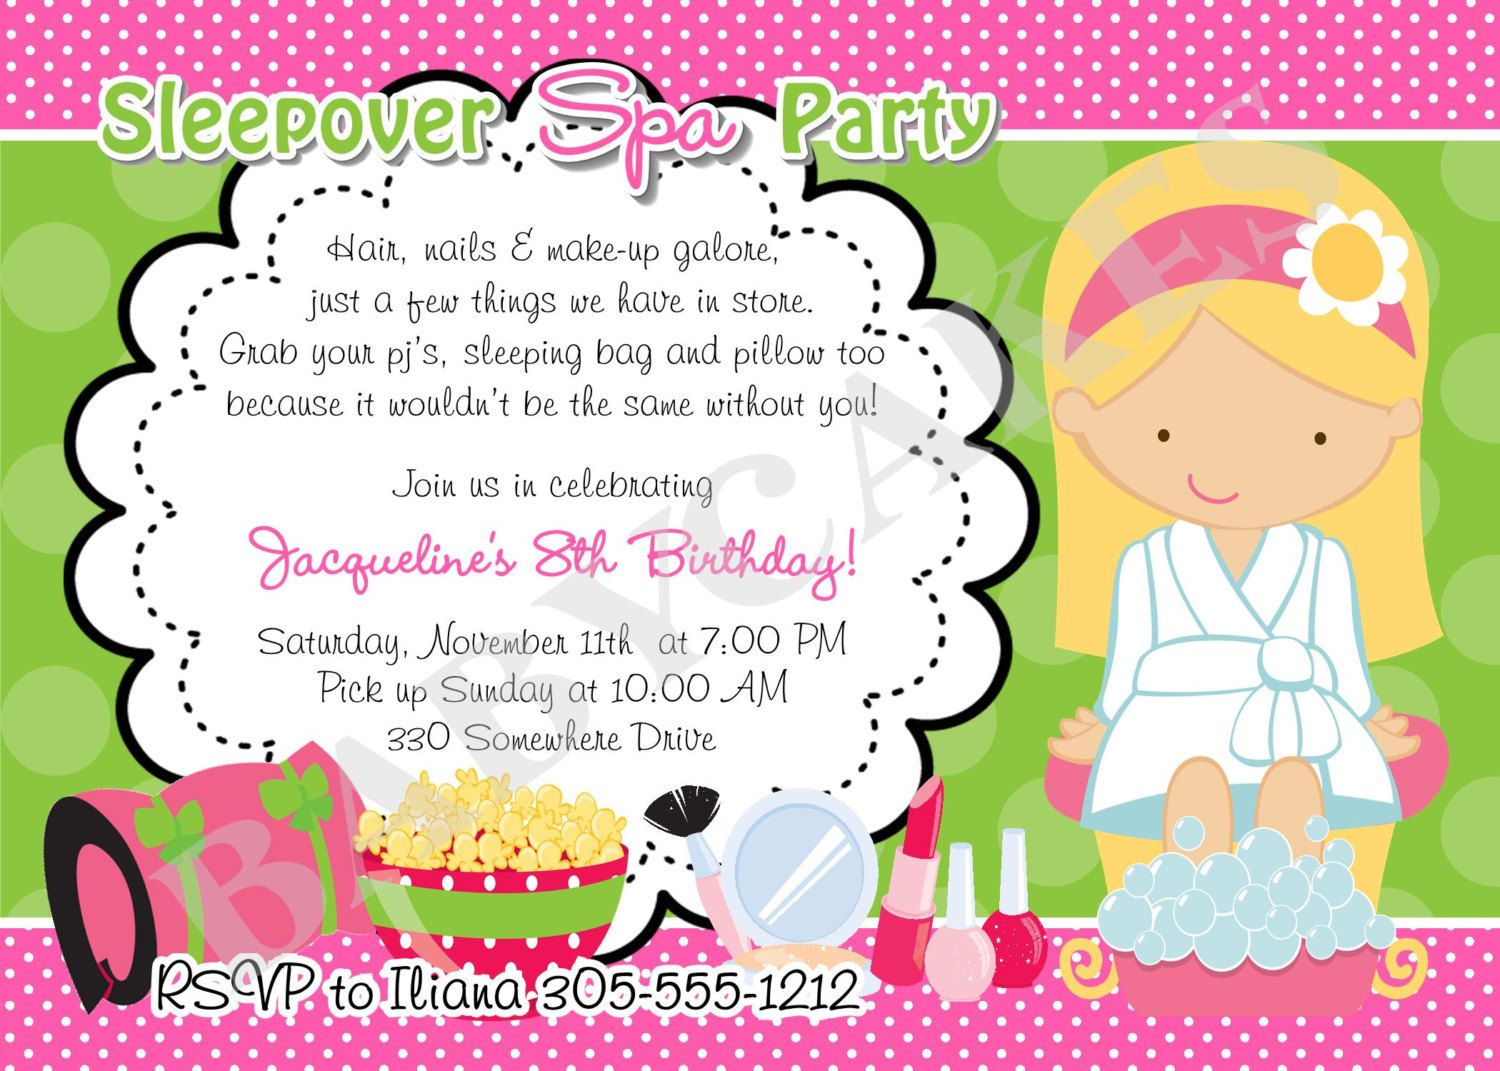 Sleepover Spa Party Invitation Birthday ideas – Spa Slumber Party Invitations